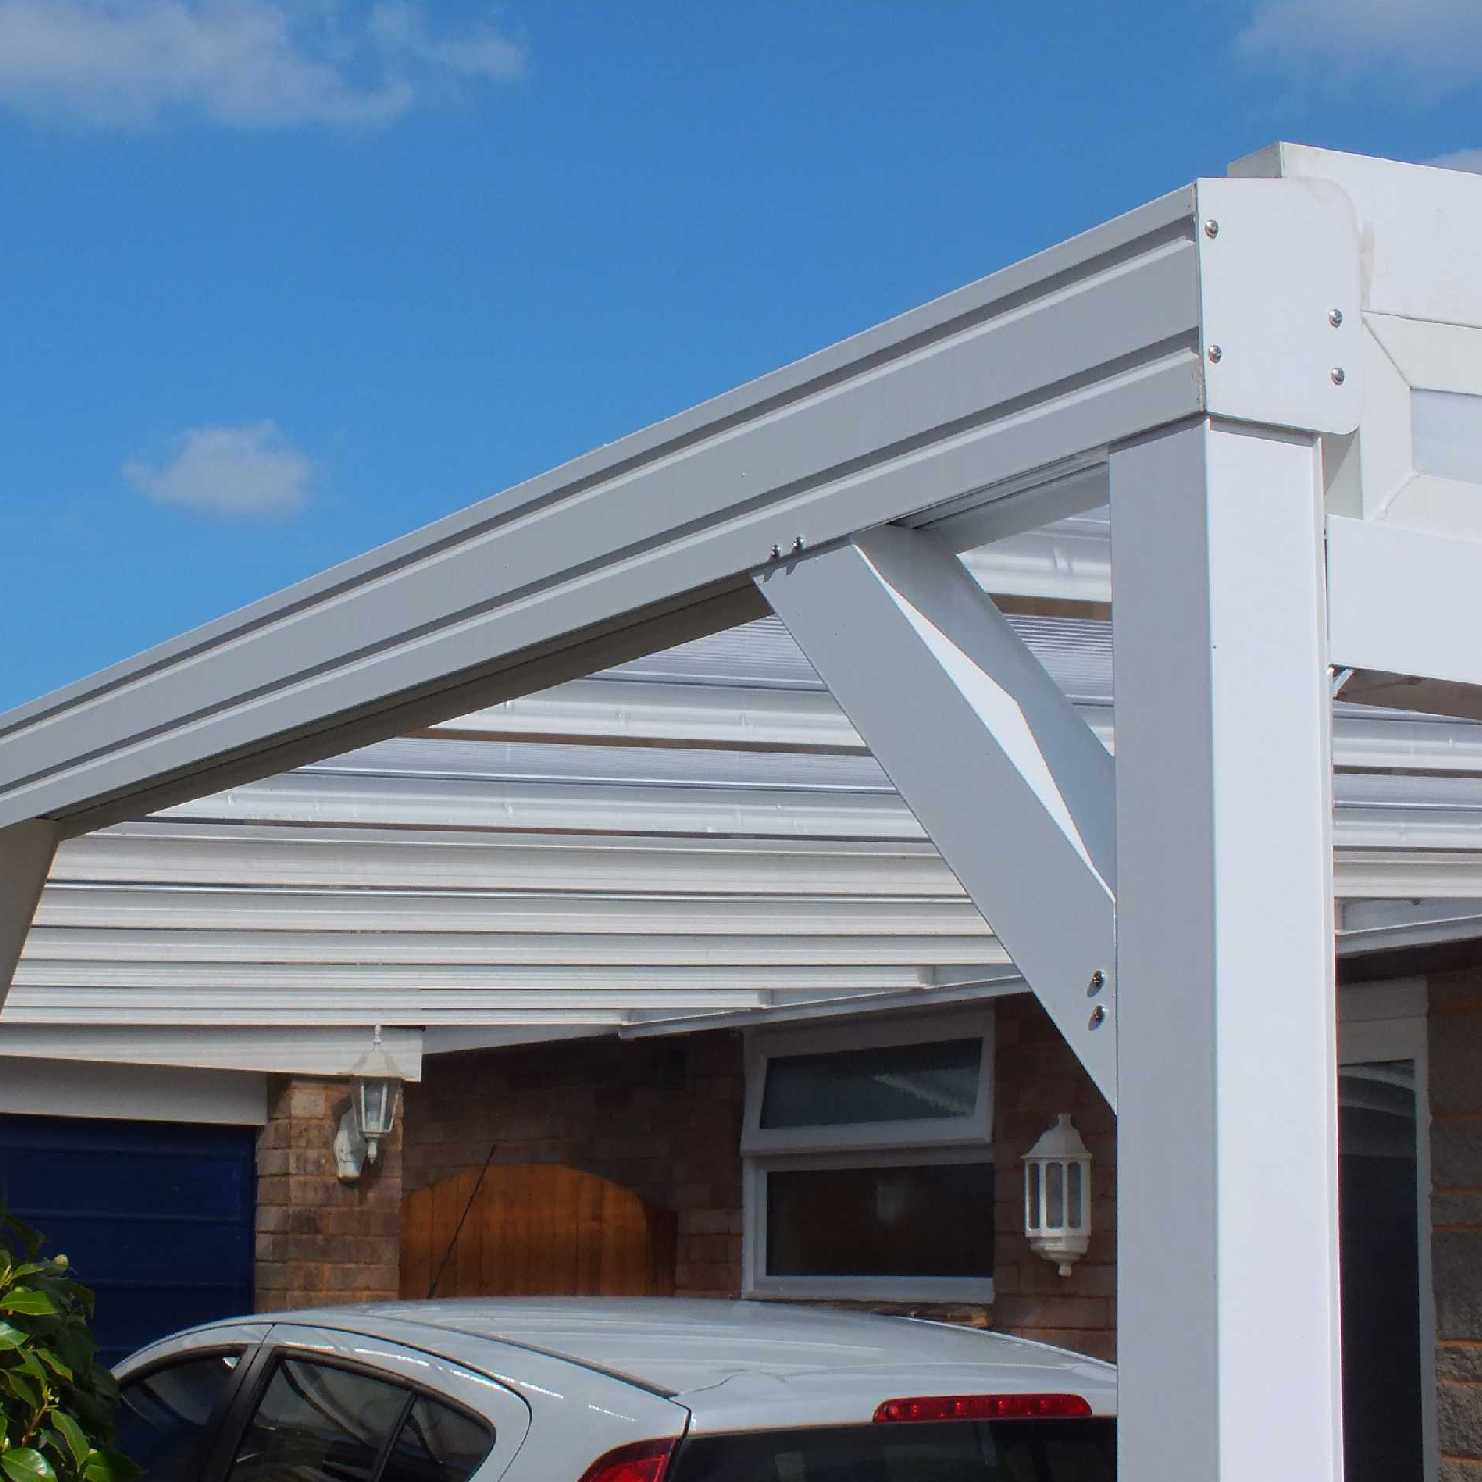 Great deals on Omega Smart White Lean-To Canopy with 16mm Polycarbonate Glazing - 10.6m (W) x 3.5m (P), (5) Supporting Posts